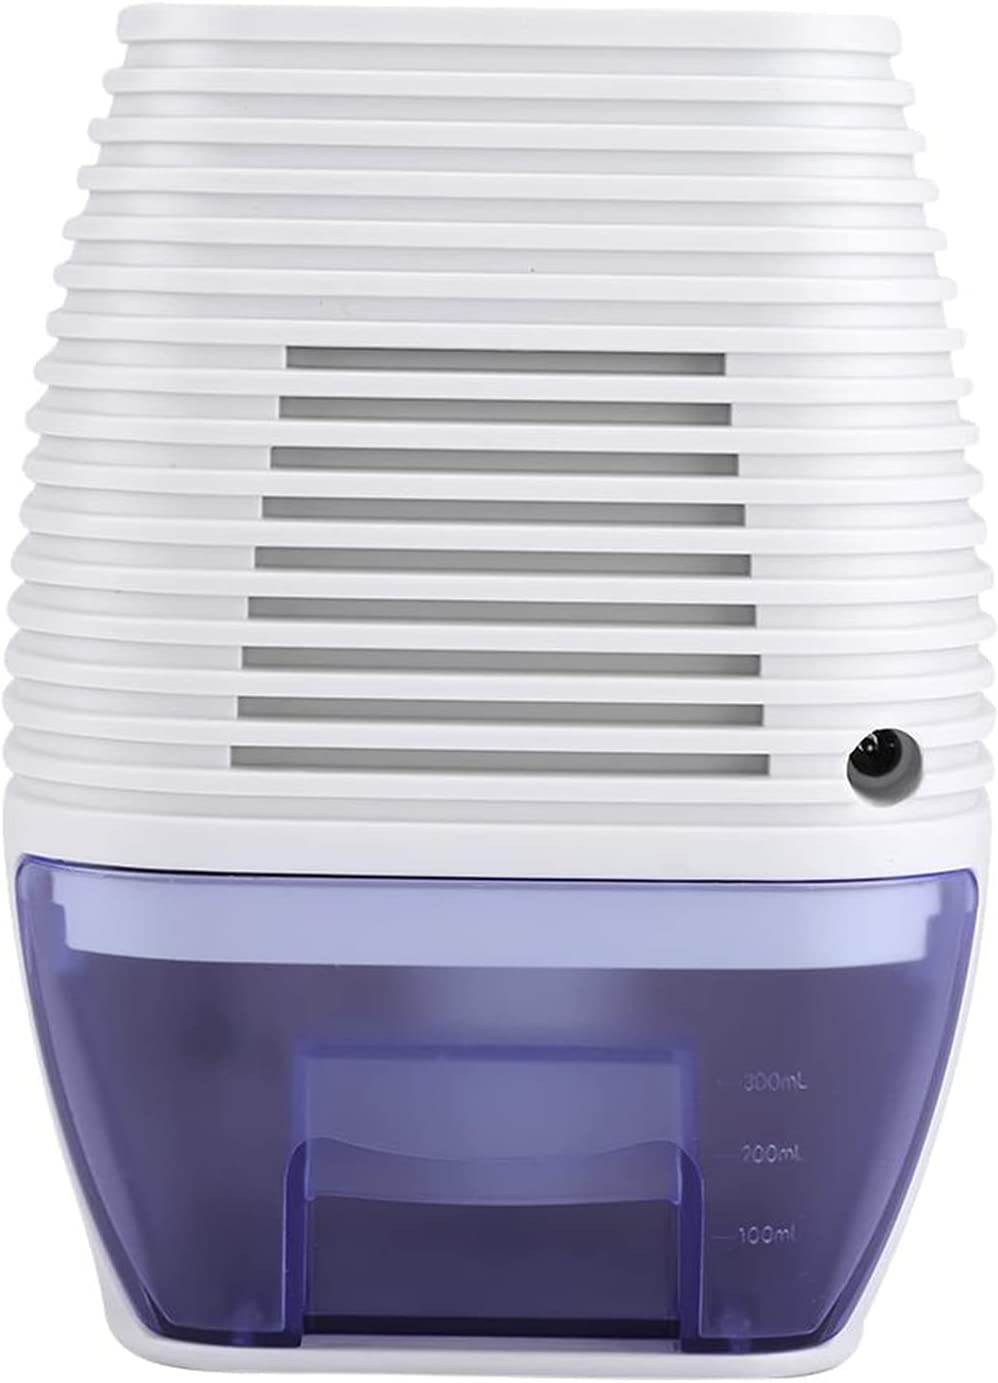 tyui Dehumidifier Today's only Household Mini Portable Abso 300ml Moisture Oakland Mall